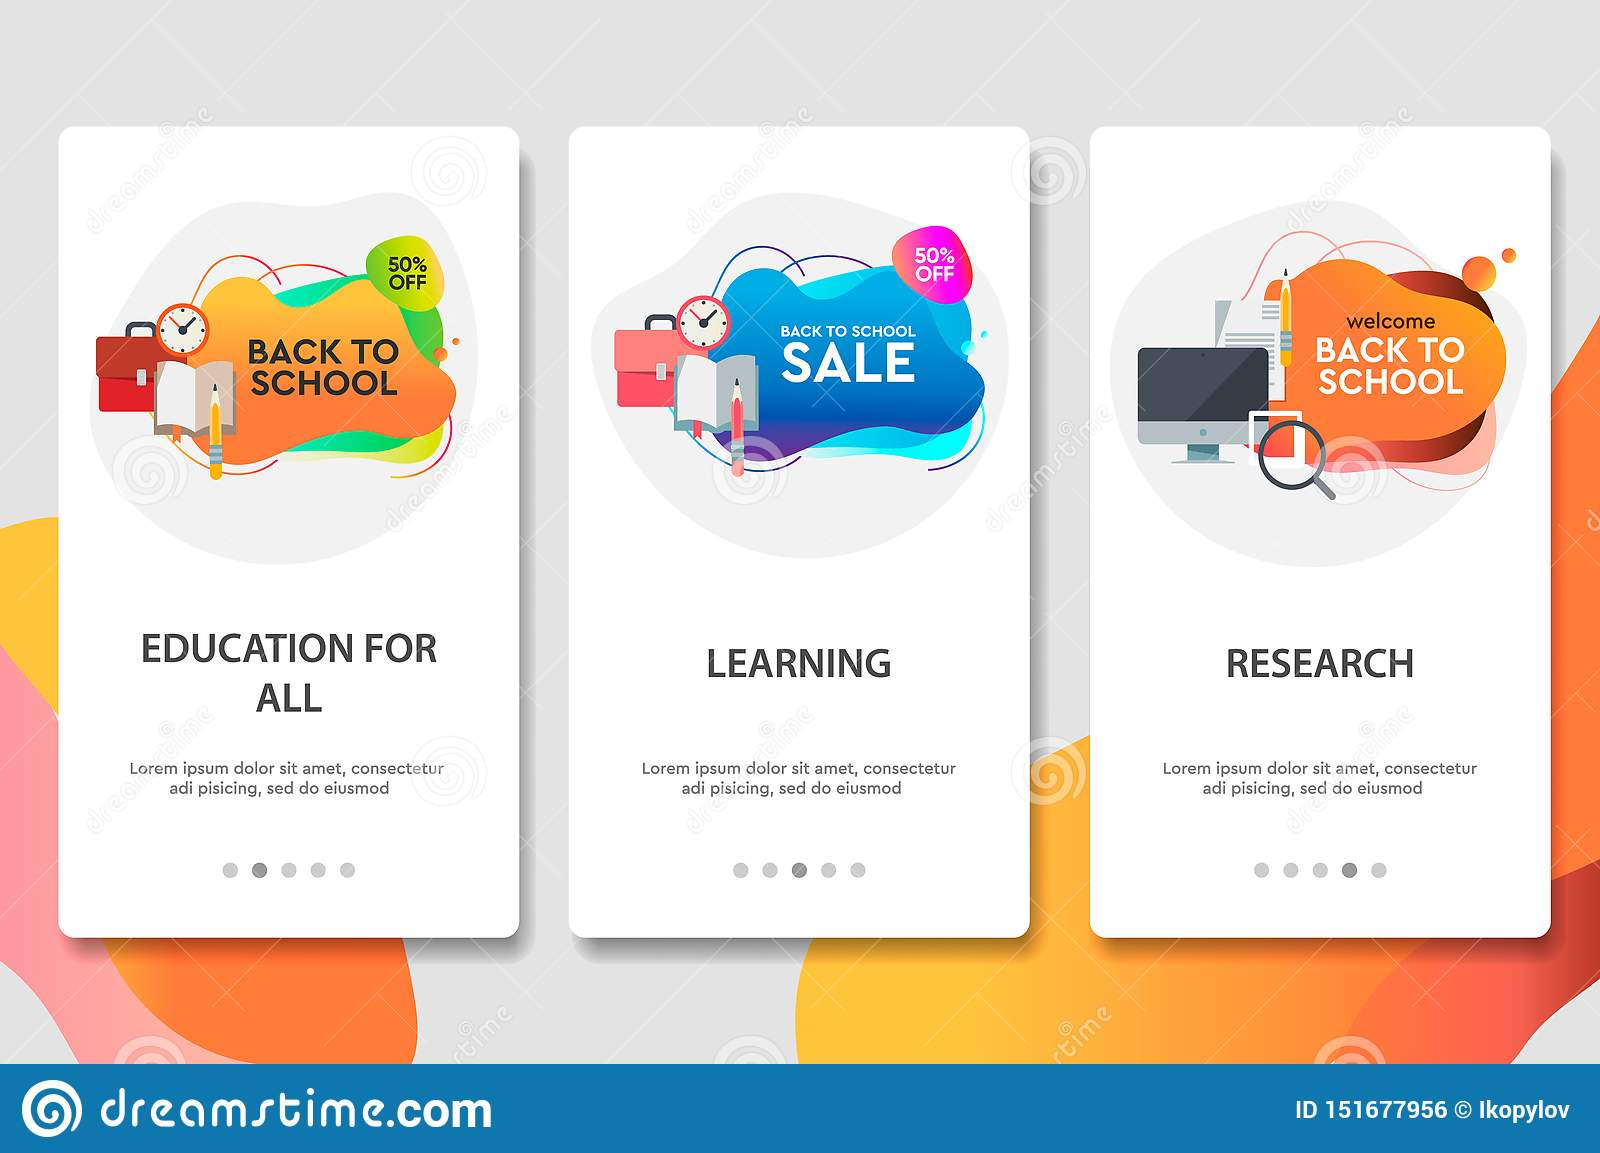 Web site onboarding screens. Online education. Digital internet tutorials and courses. Menu vector banner template for